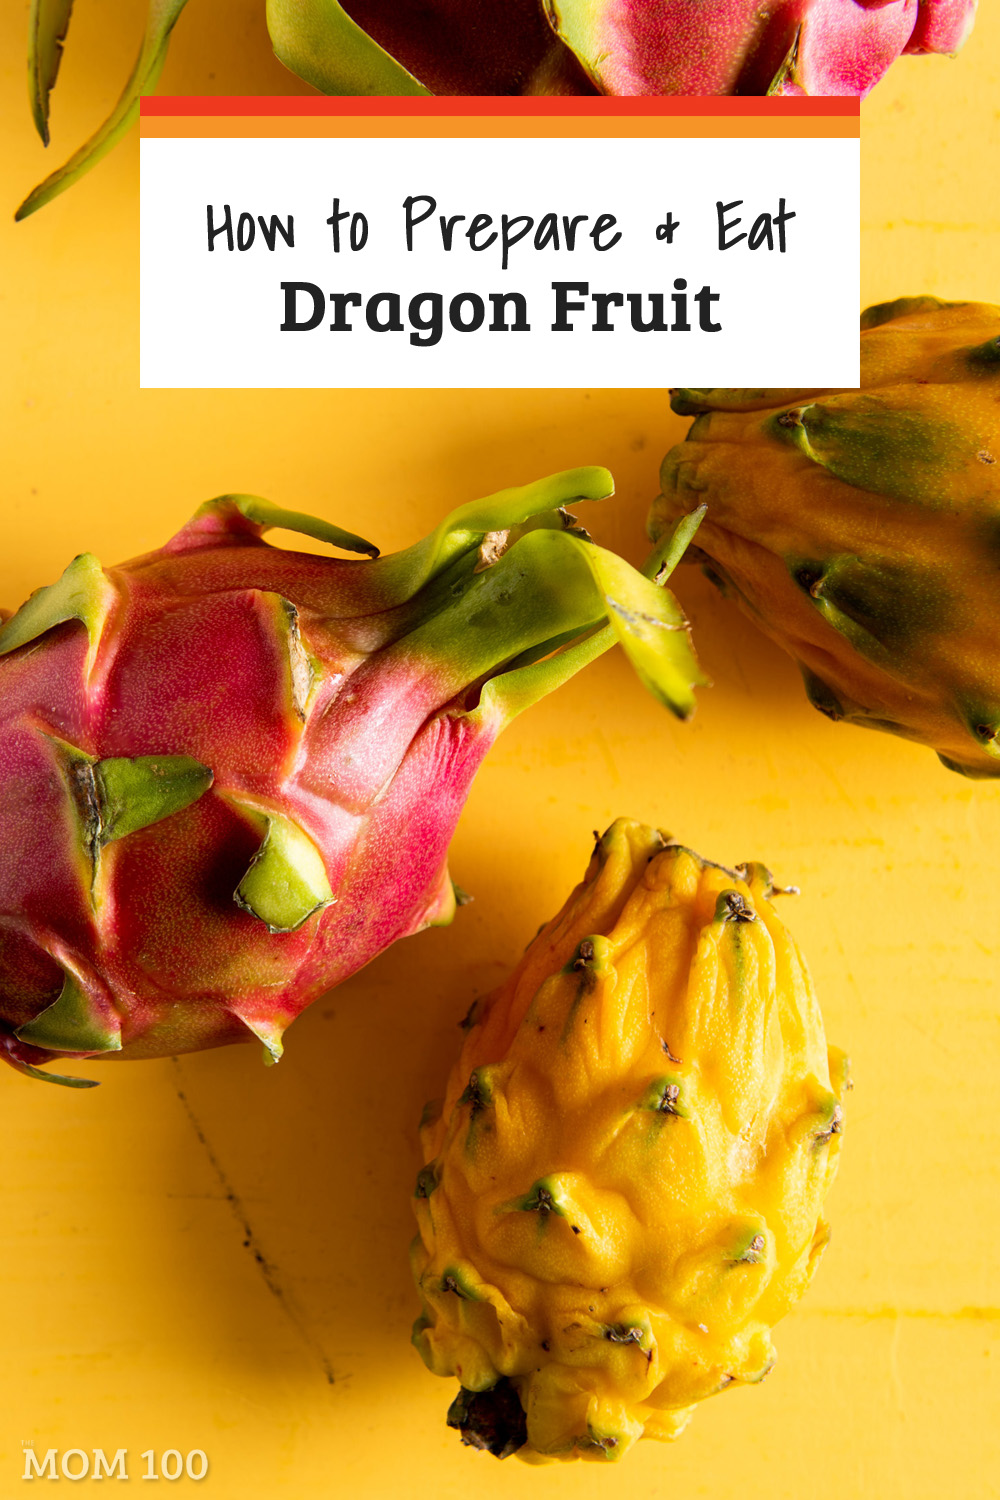 Dragon fruit, also known as pitaya or strawberry fruit is a tropical fruit high in antioxidants. Here\'s how to prepare and eat dragon fruit.